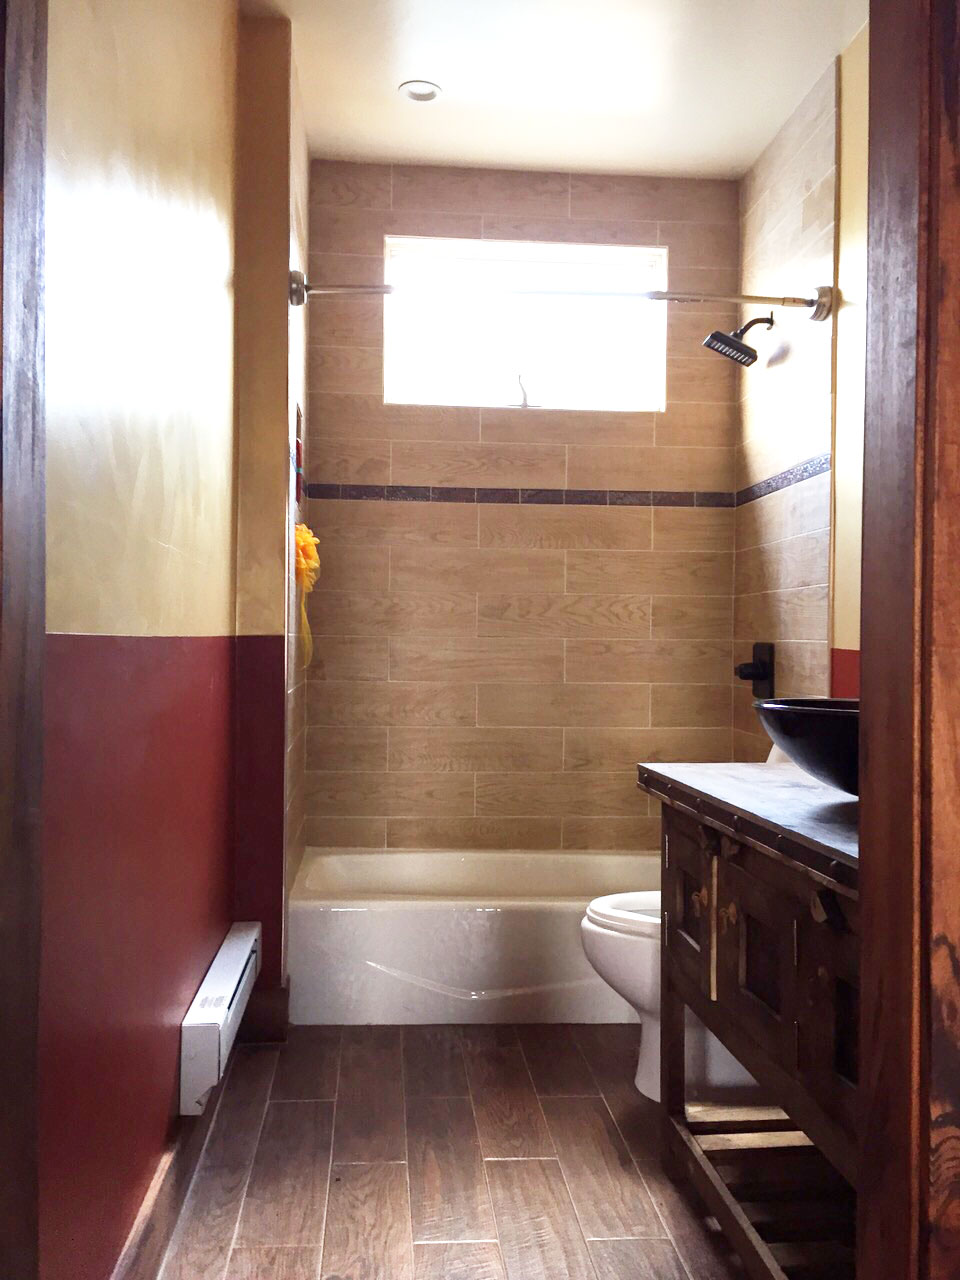 Forest hills bathroom remodel bay state refinishing remodeling large wood pattern ceramic tiles floor shower surround rustic bathroom remodel dailygadgetfo Images